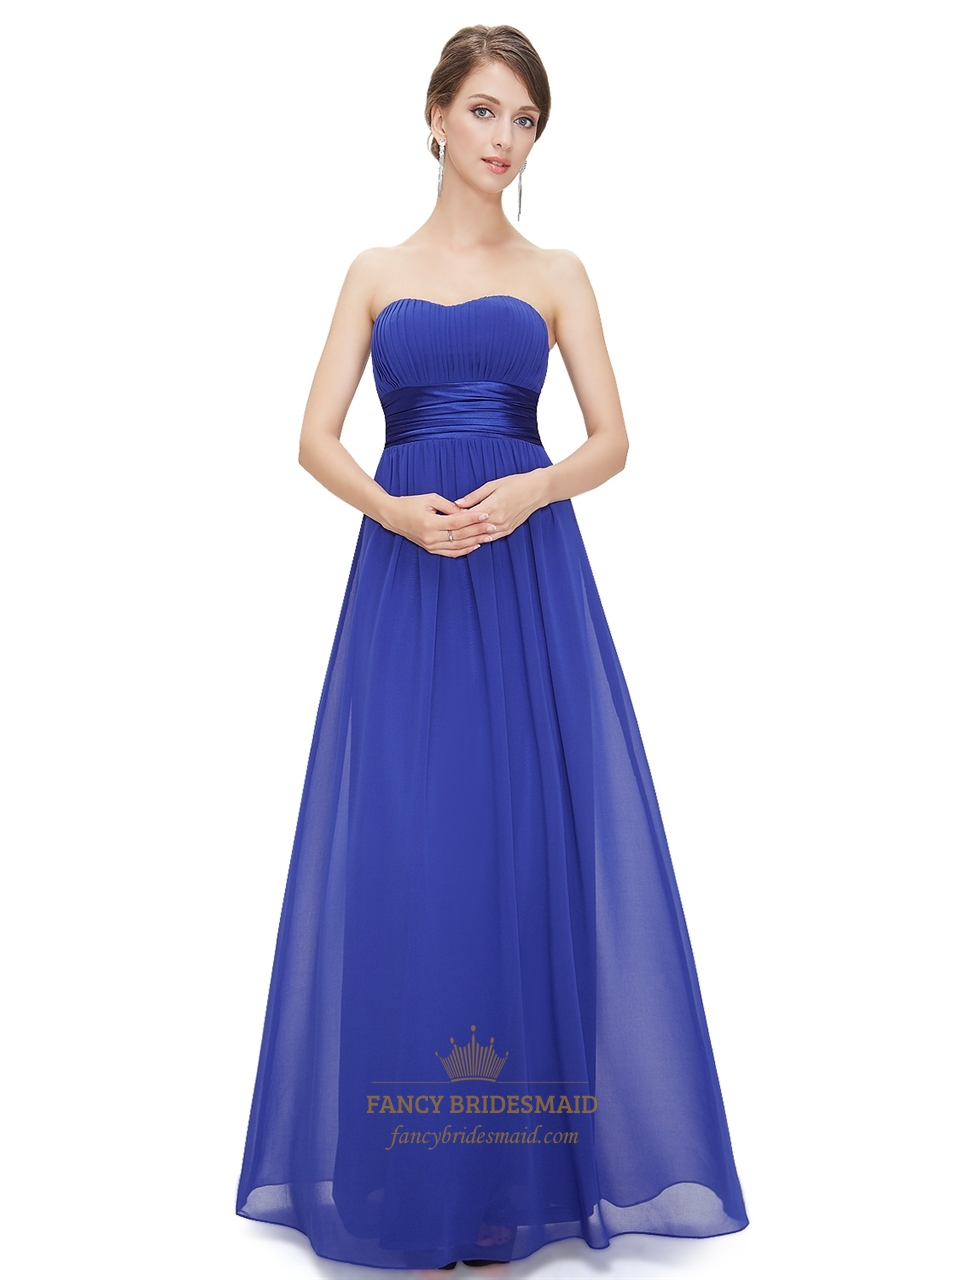 Royal blue chiffon strapless long bridesmaid dress for for Dresses for wedding bridesmaid